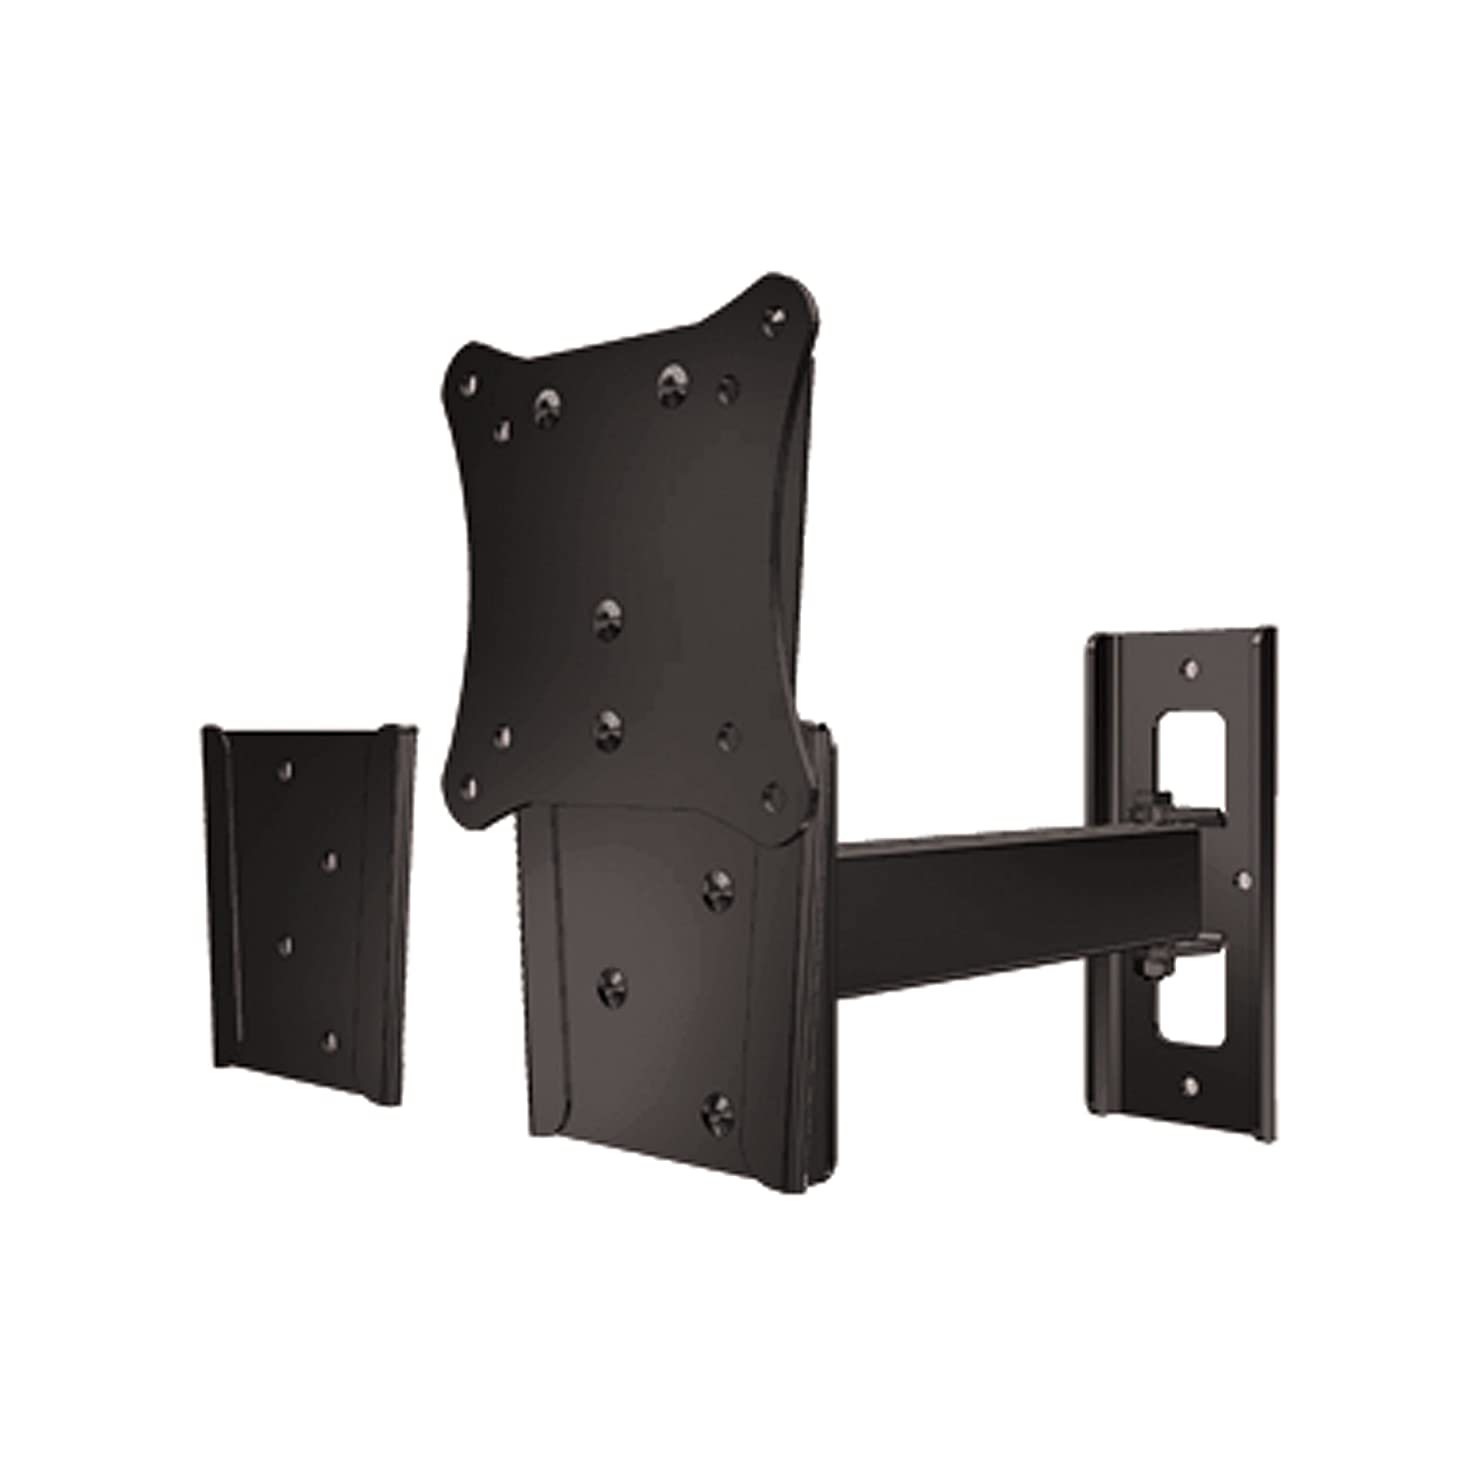 MORryde MORyde TV5-005H Rigid and Swivel Extension Portable TV Wall Mount